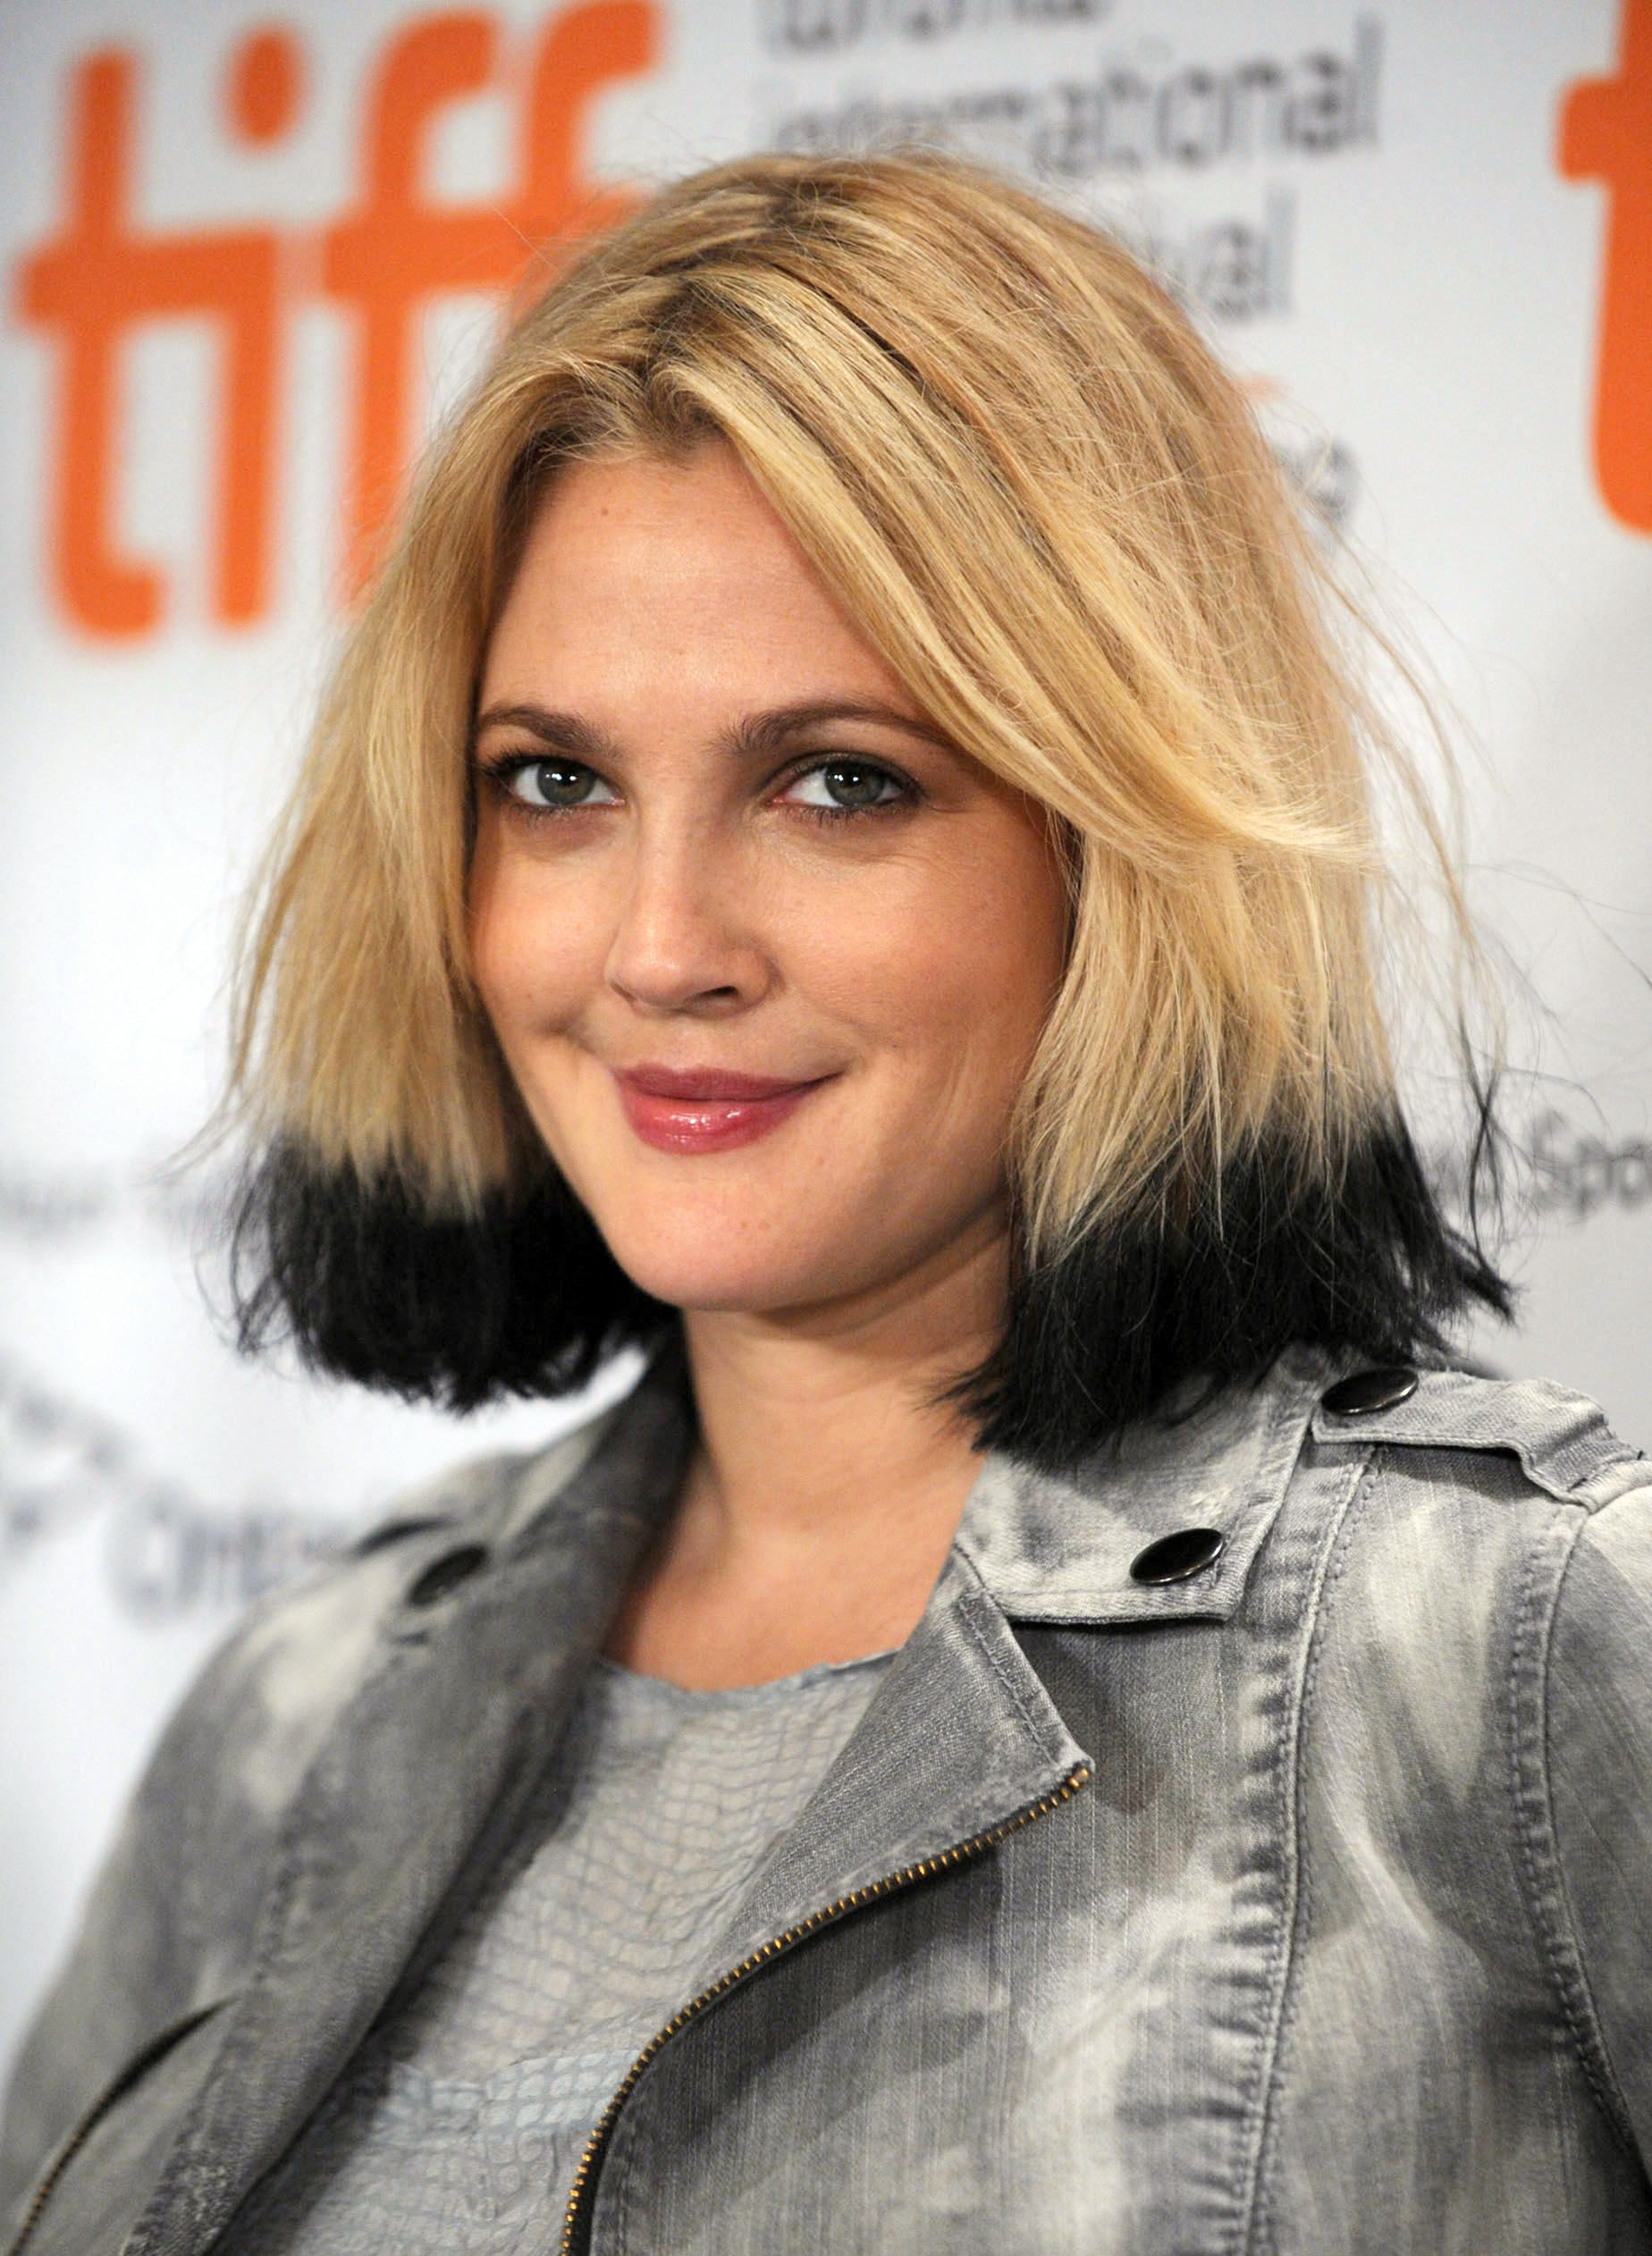 Drew Barrymore The Queen Of Dip Dye Ombre Hair